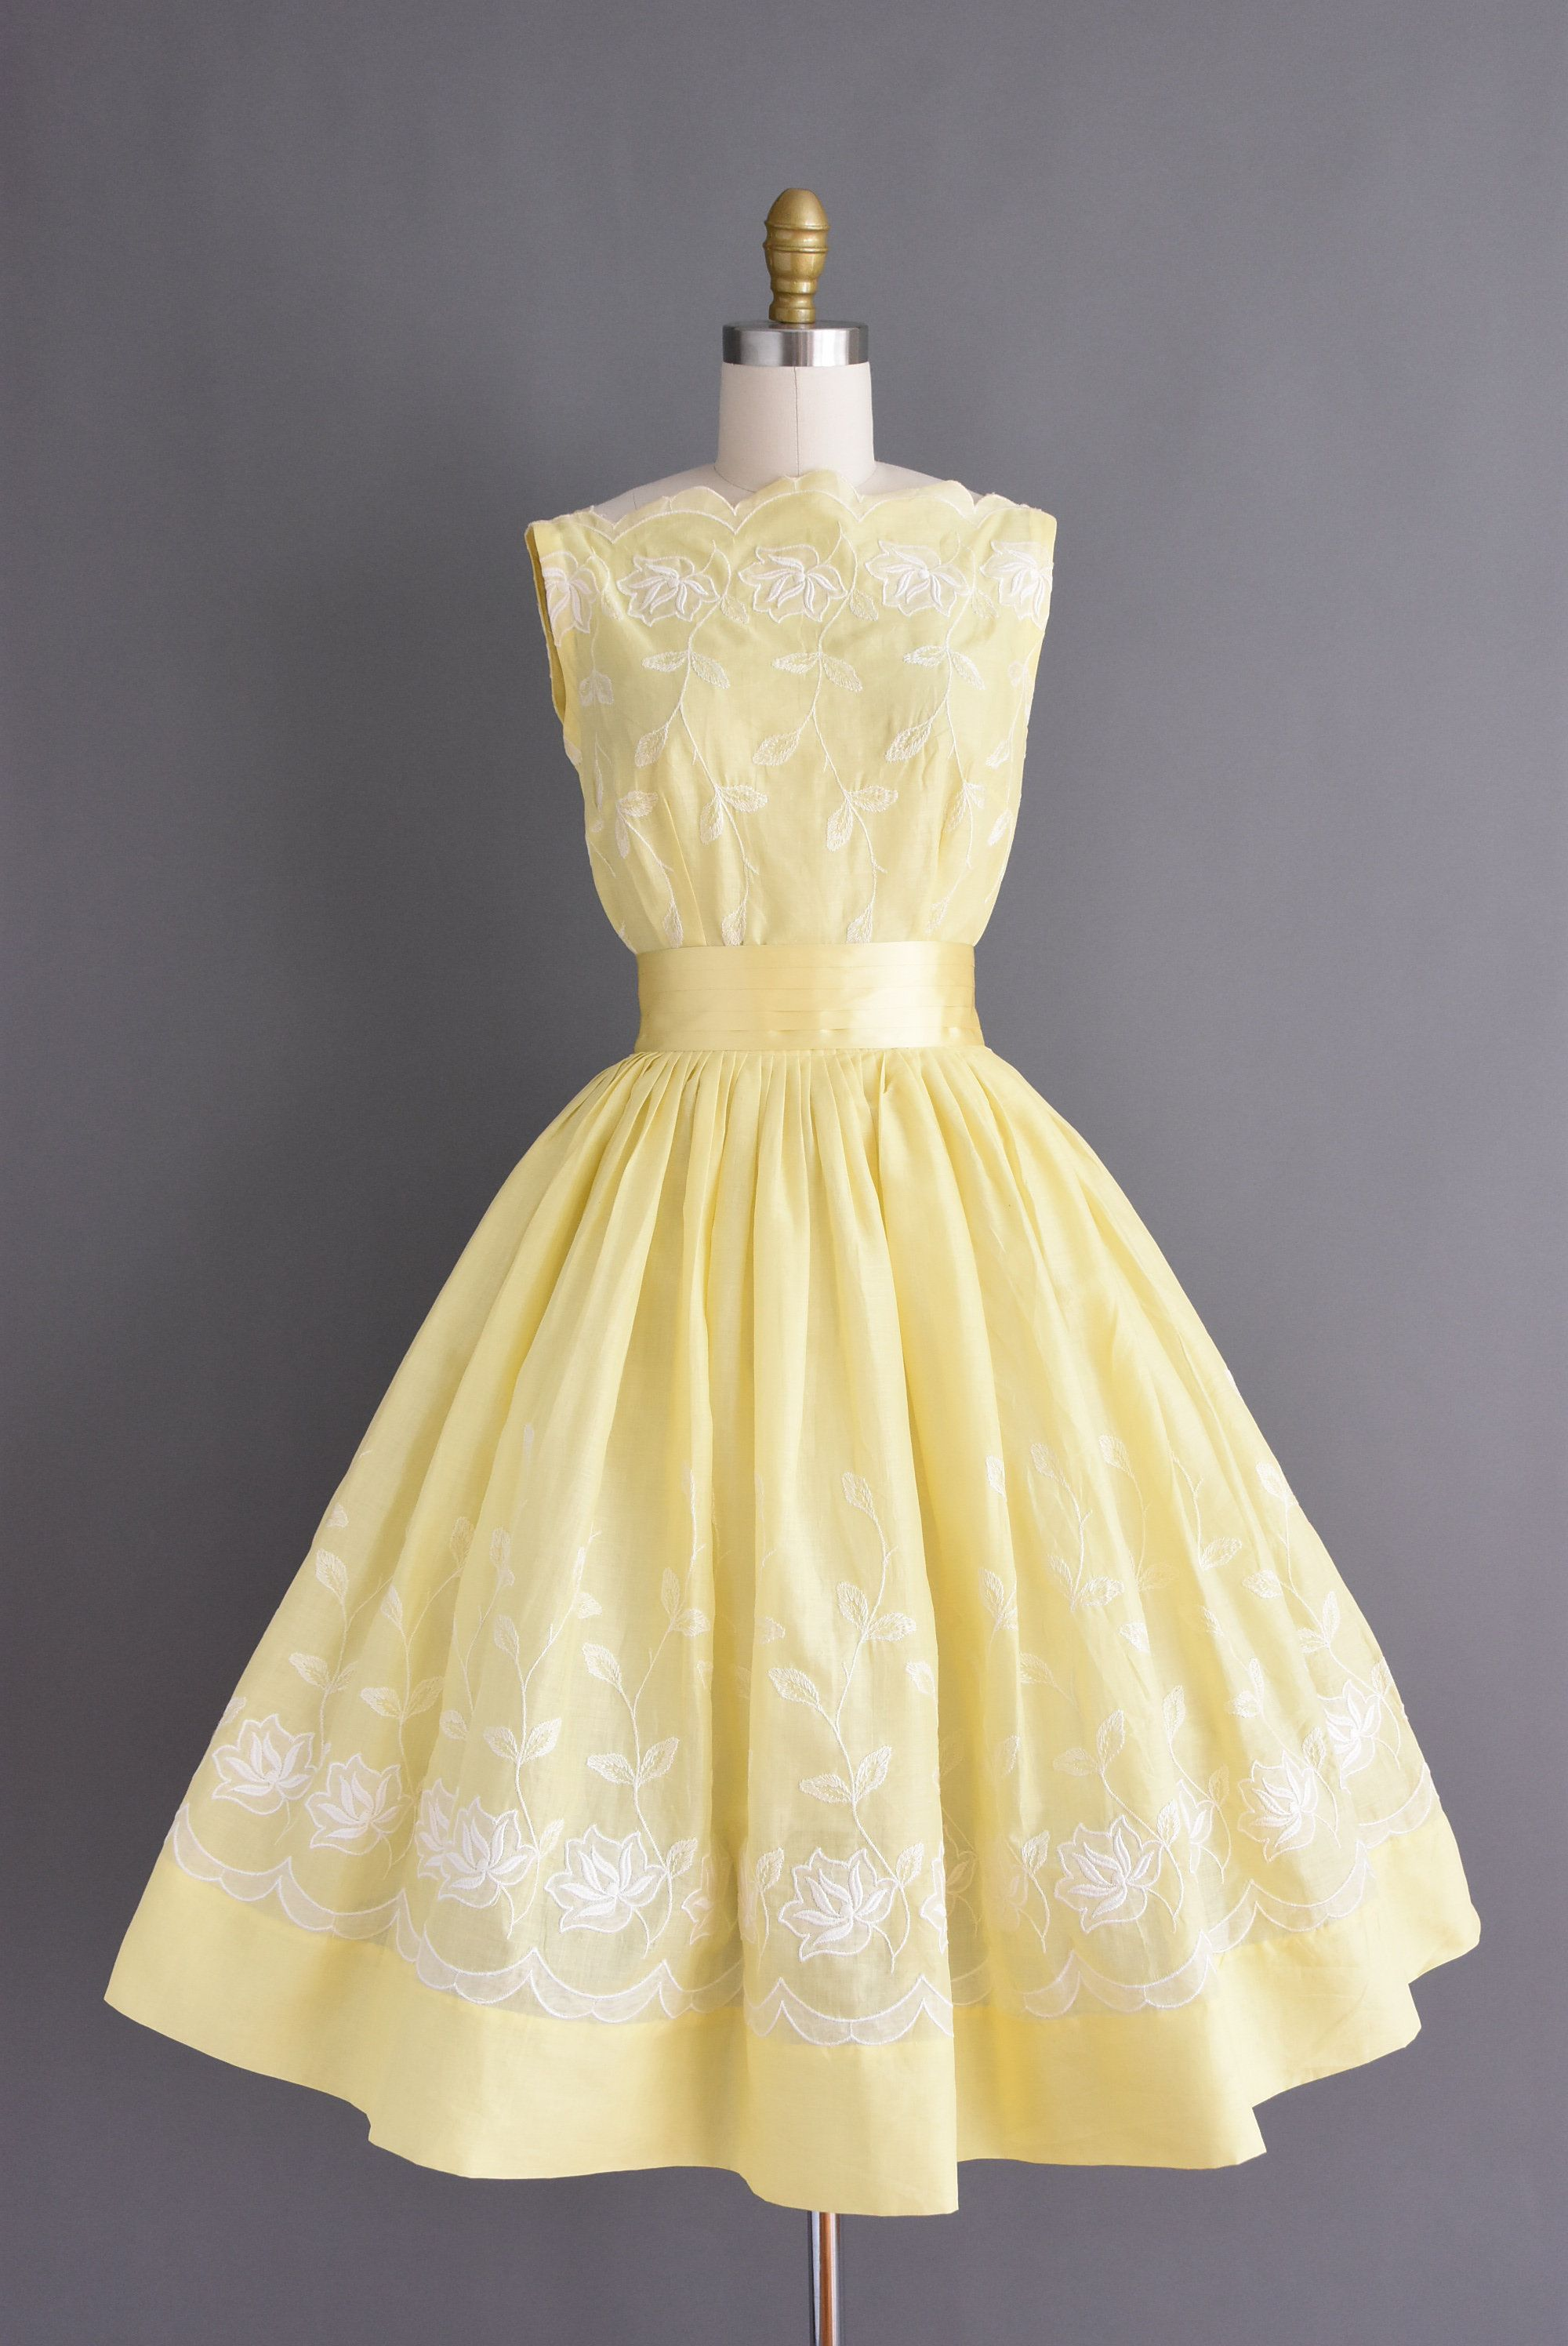 On Layaway 50s Vintage Dress Jerry Gilden Buttercup Yellow Full Skirt Cotton Floral Dress Size Xs Small Vintage 1950s Dress Vintage Dresses 50s Yellow Vintage Dress Vintage 1950s Dresses [ 2992 x 2000 Pixel ]